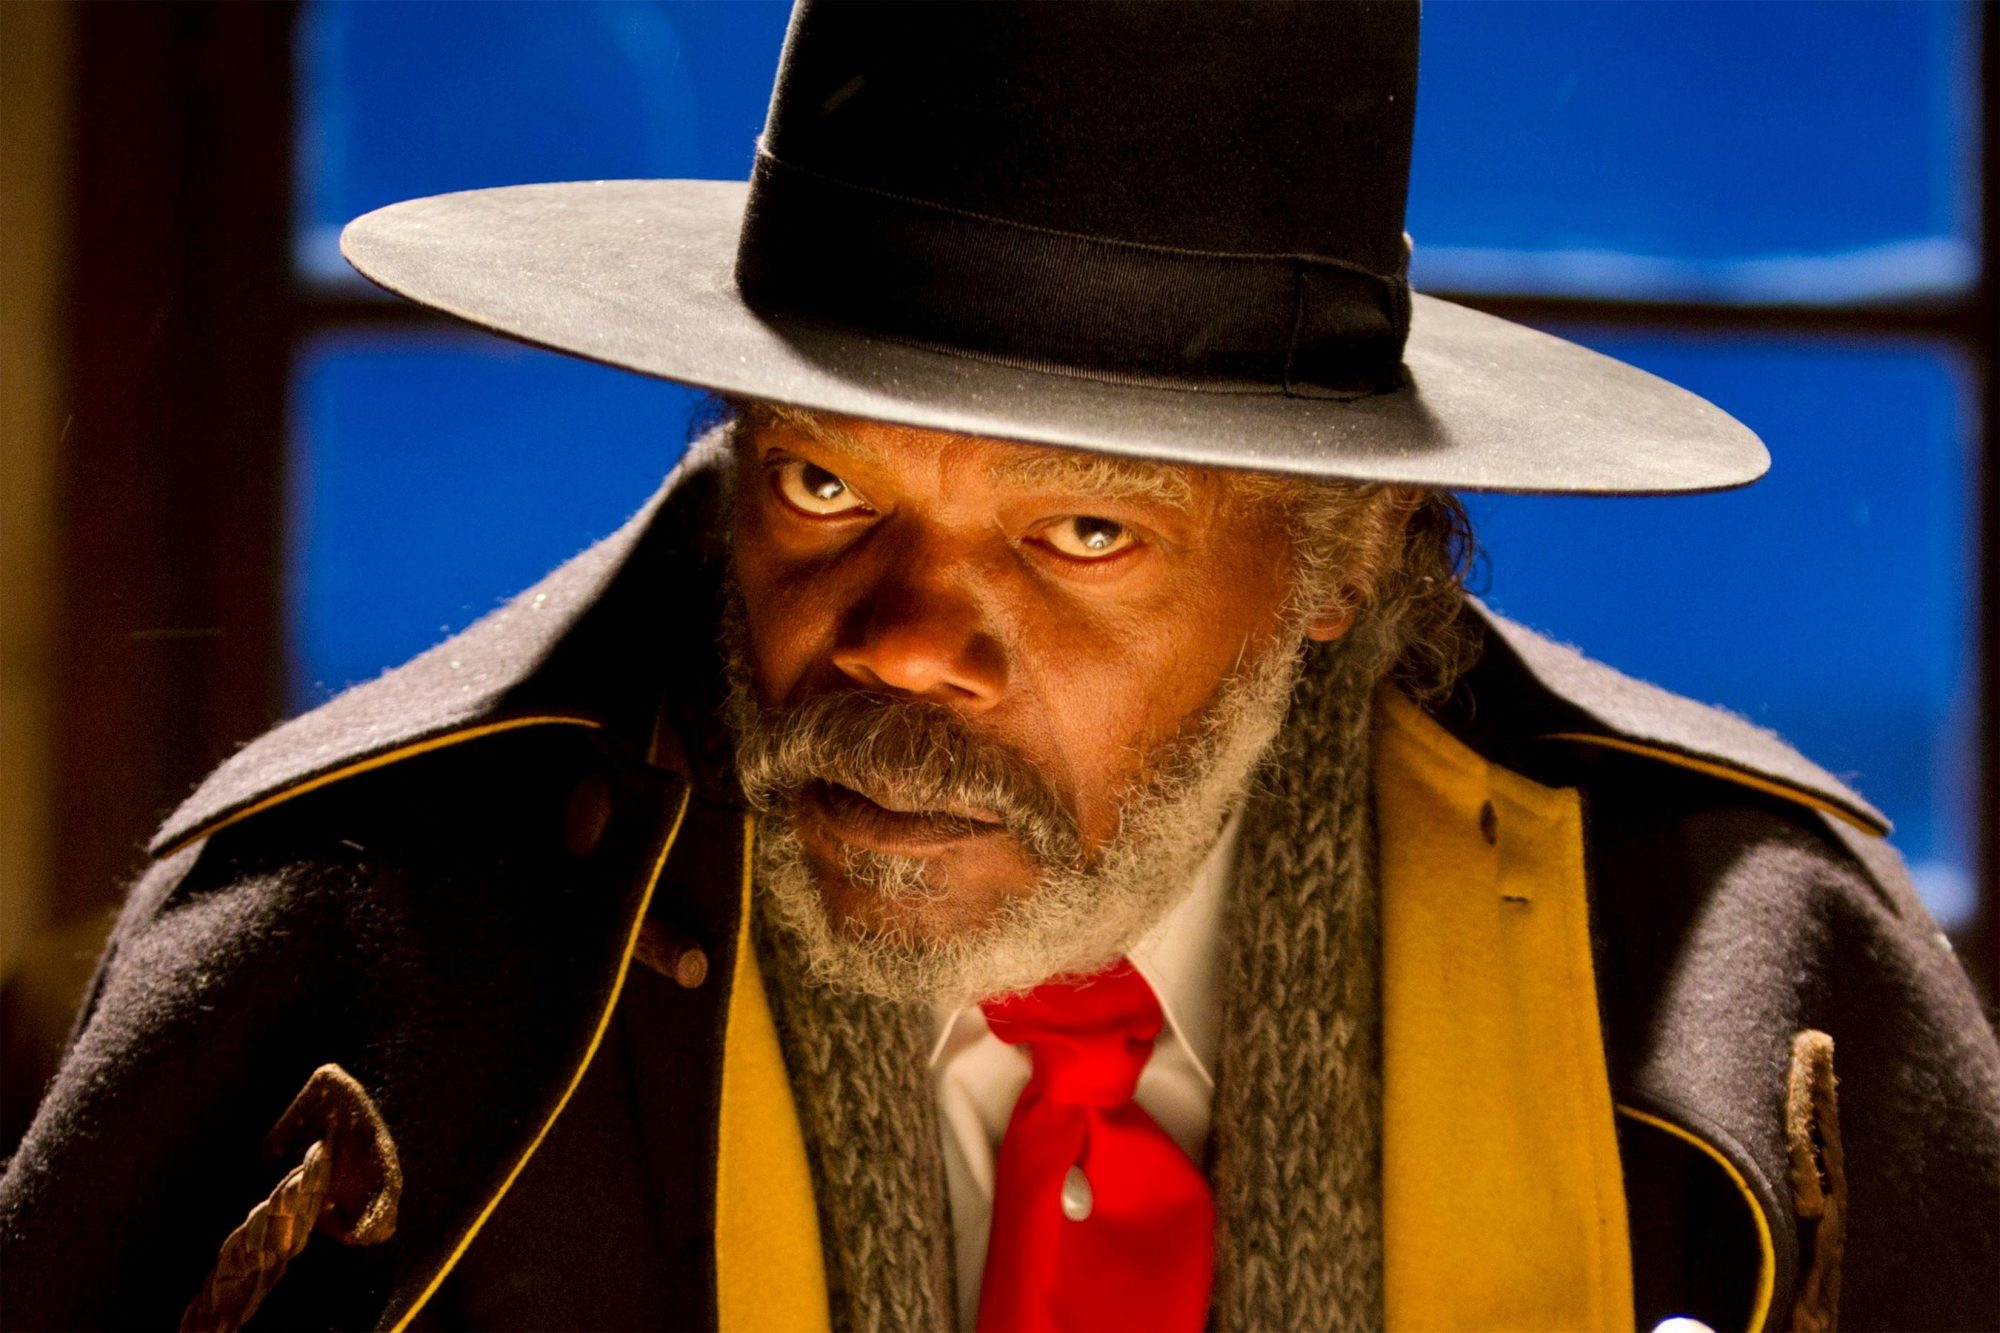 THE HATEFUL EIGHT (2015) SAMUEL L. JACKSON CR: Andrew Cooper/TWC